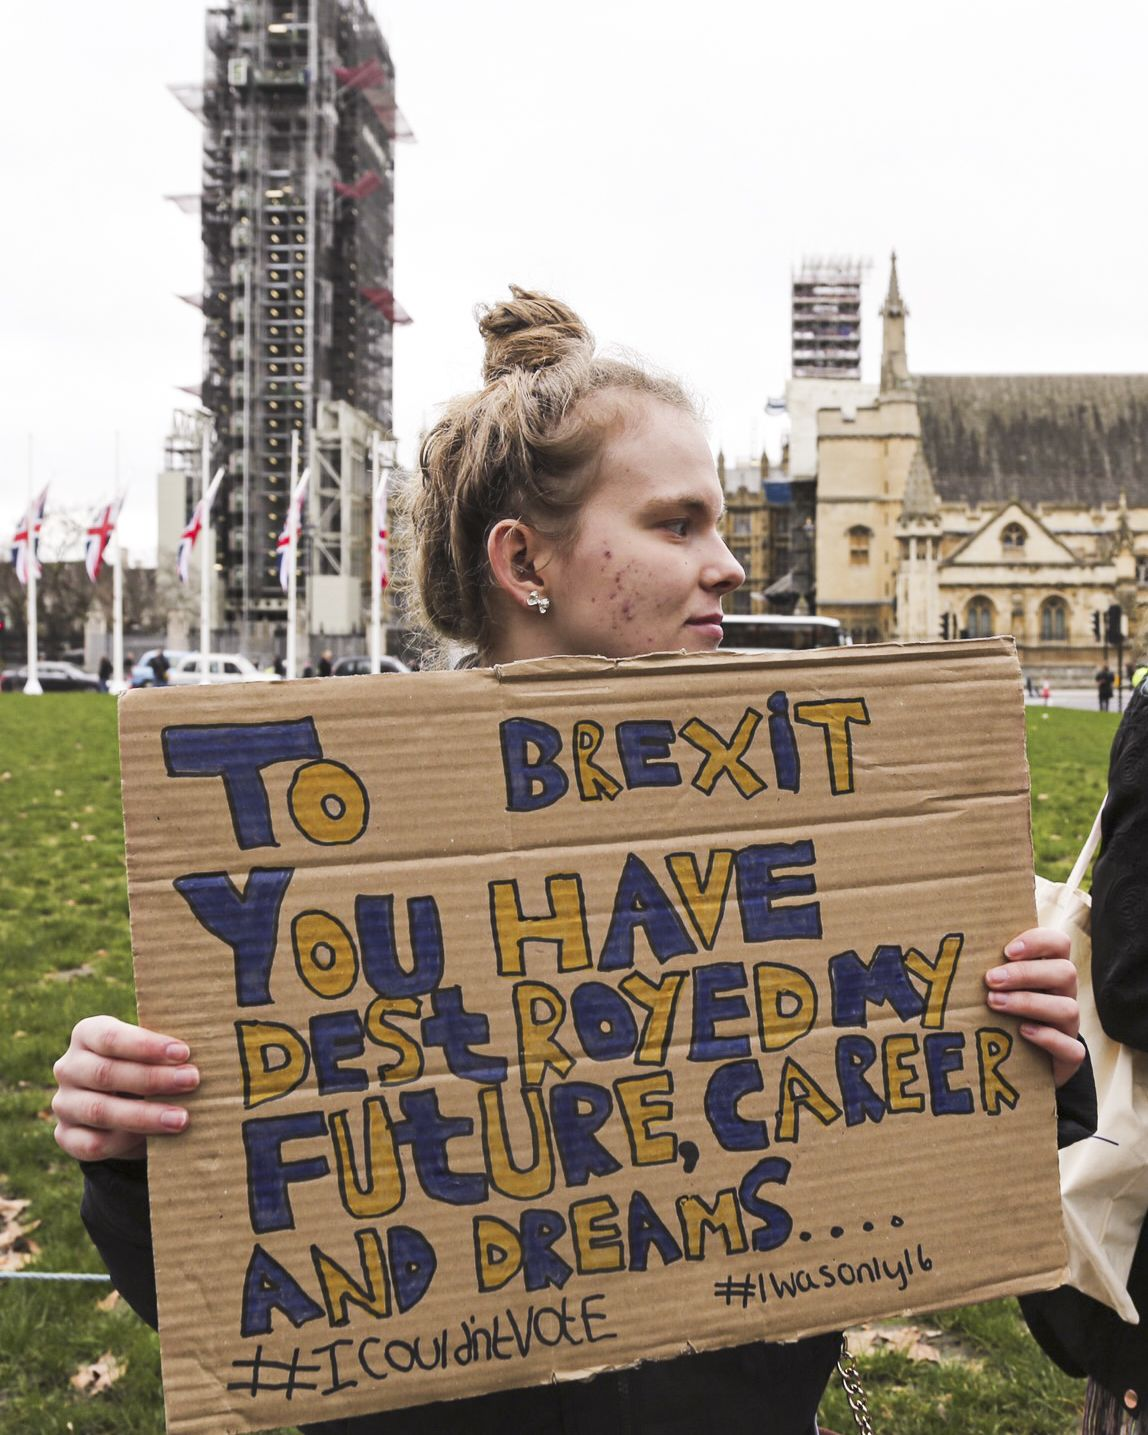 "A person holding a sign saying ""To Brexit you have destroyed my future, career and dreams"""